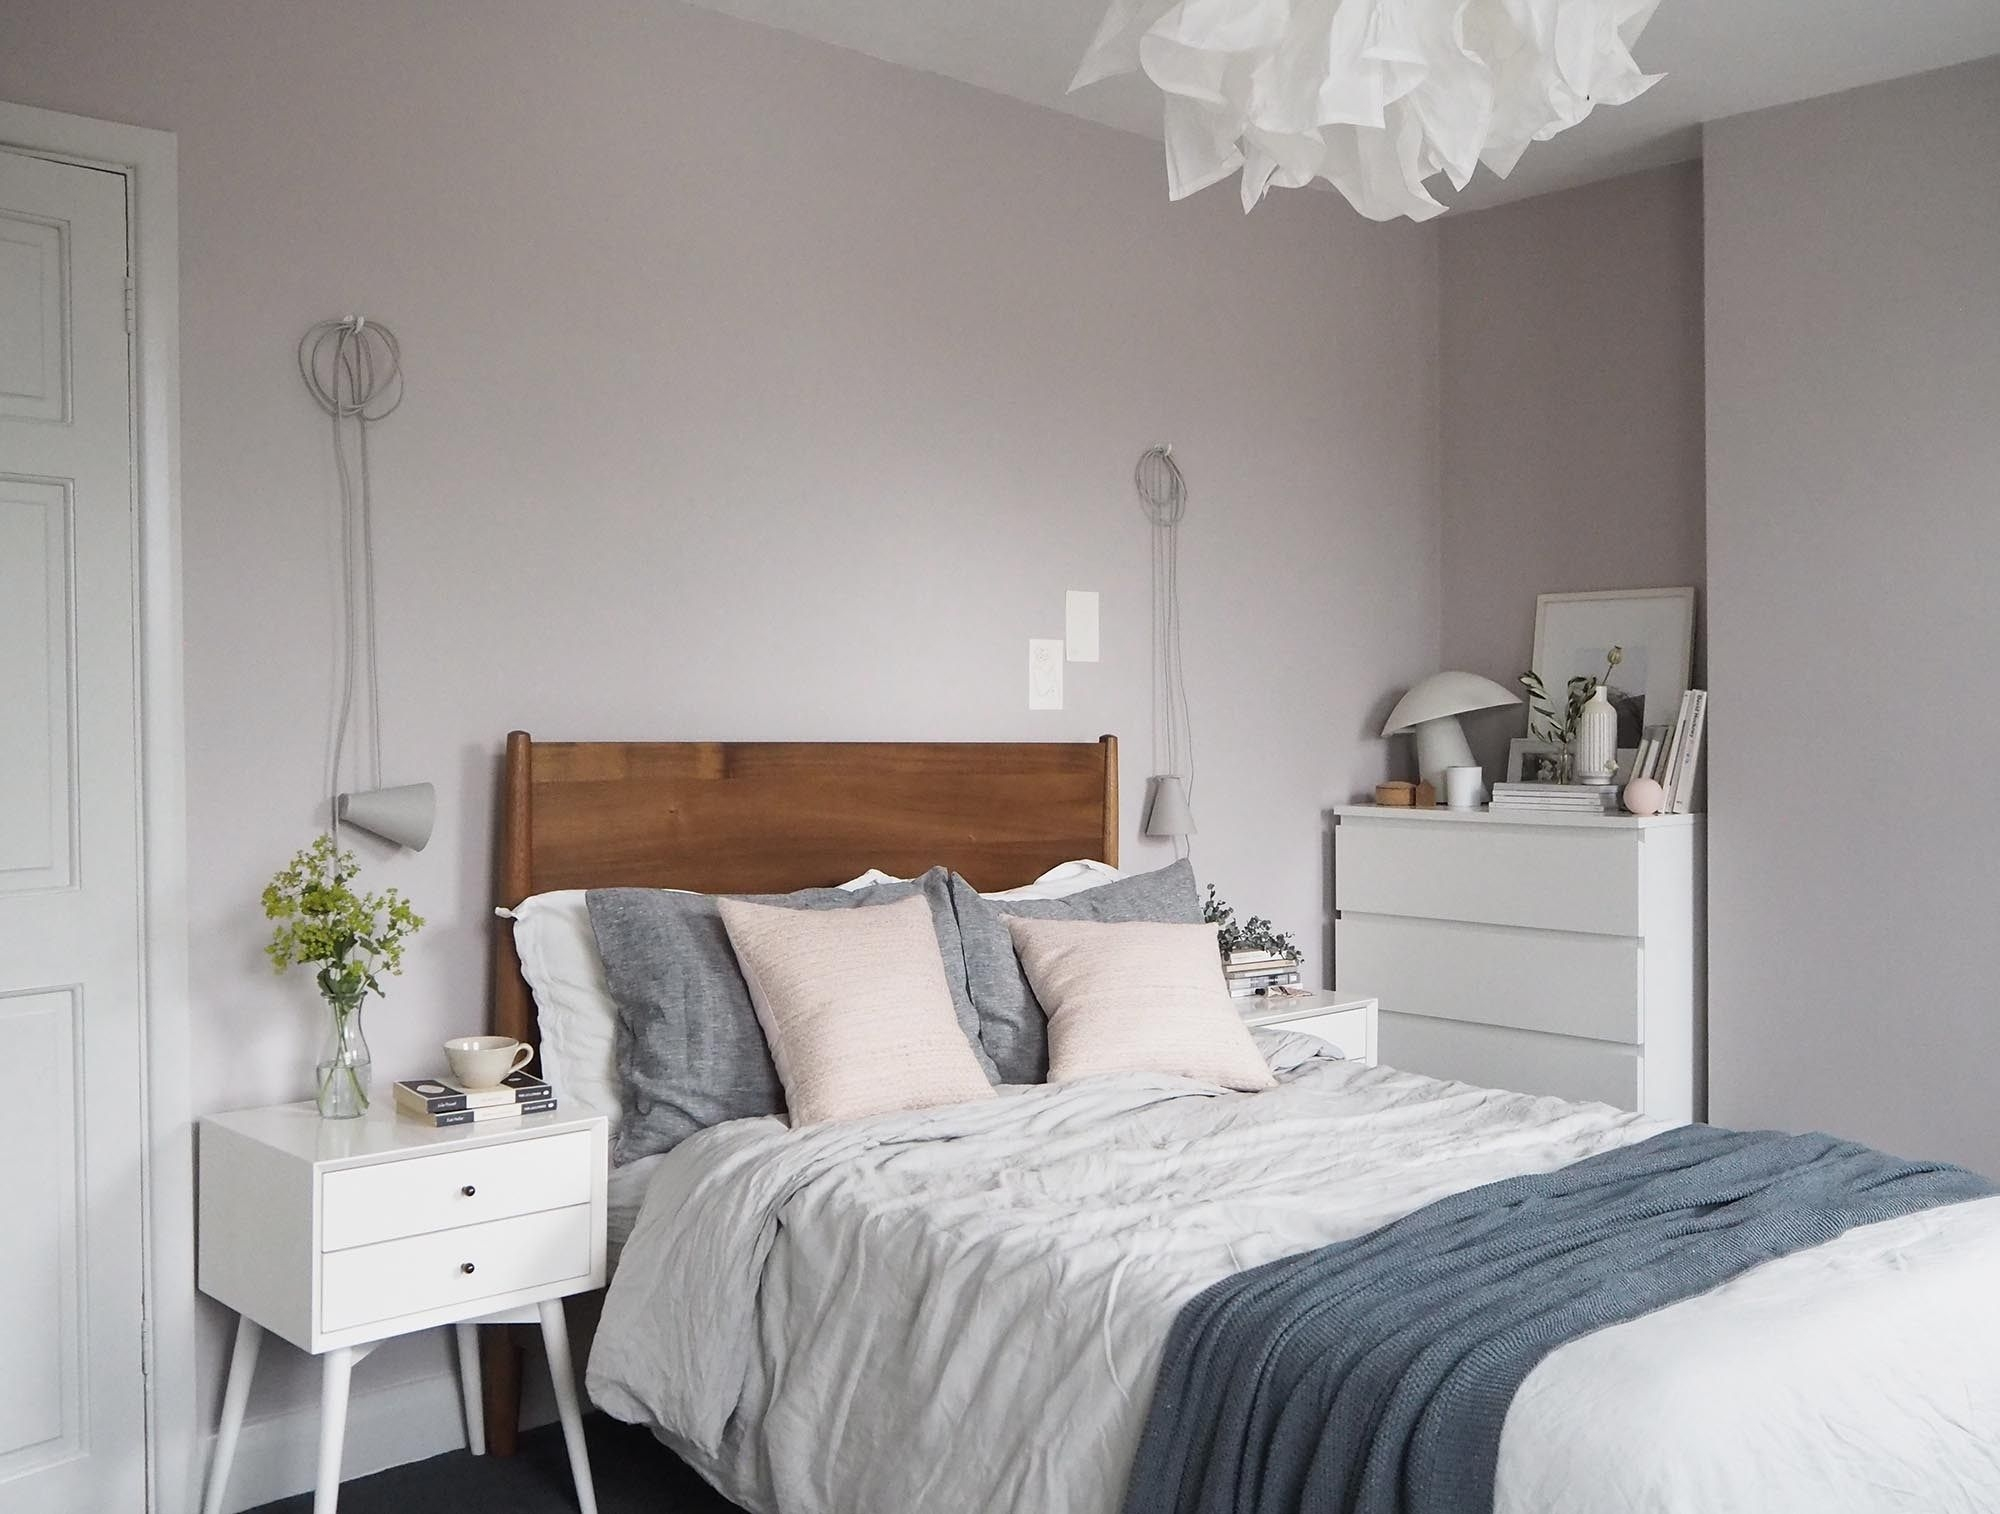 Soft Blush Pink Bedroom Reveal Before  After  Farrow  Ball Peignoir  West Elm Midcentury